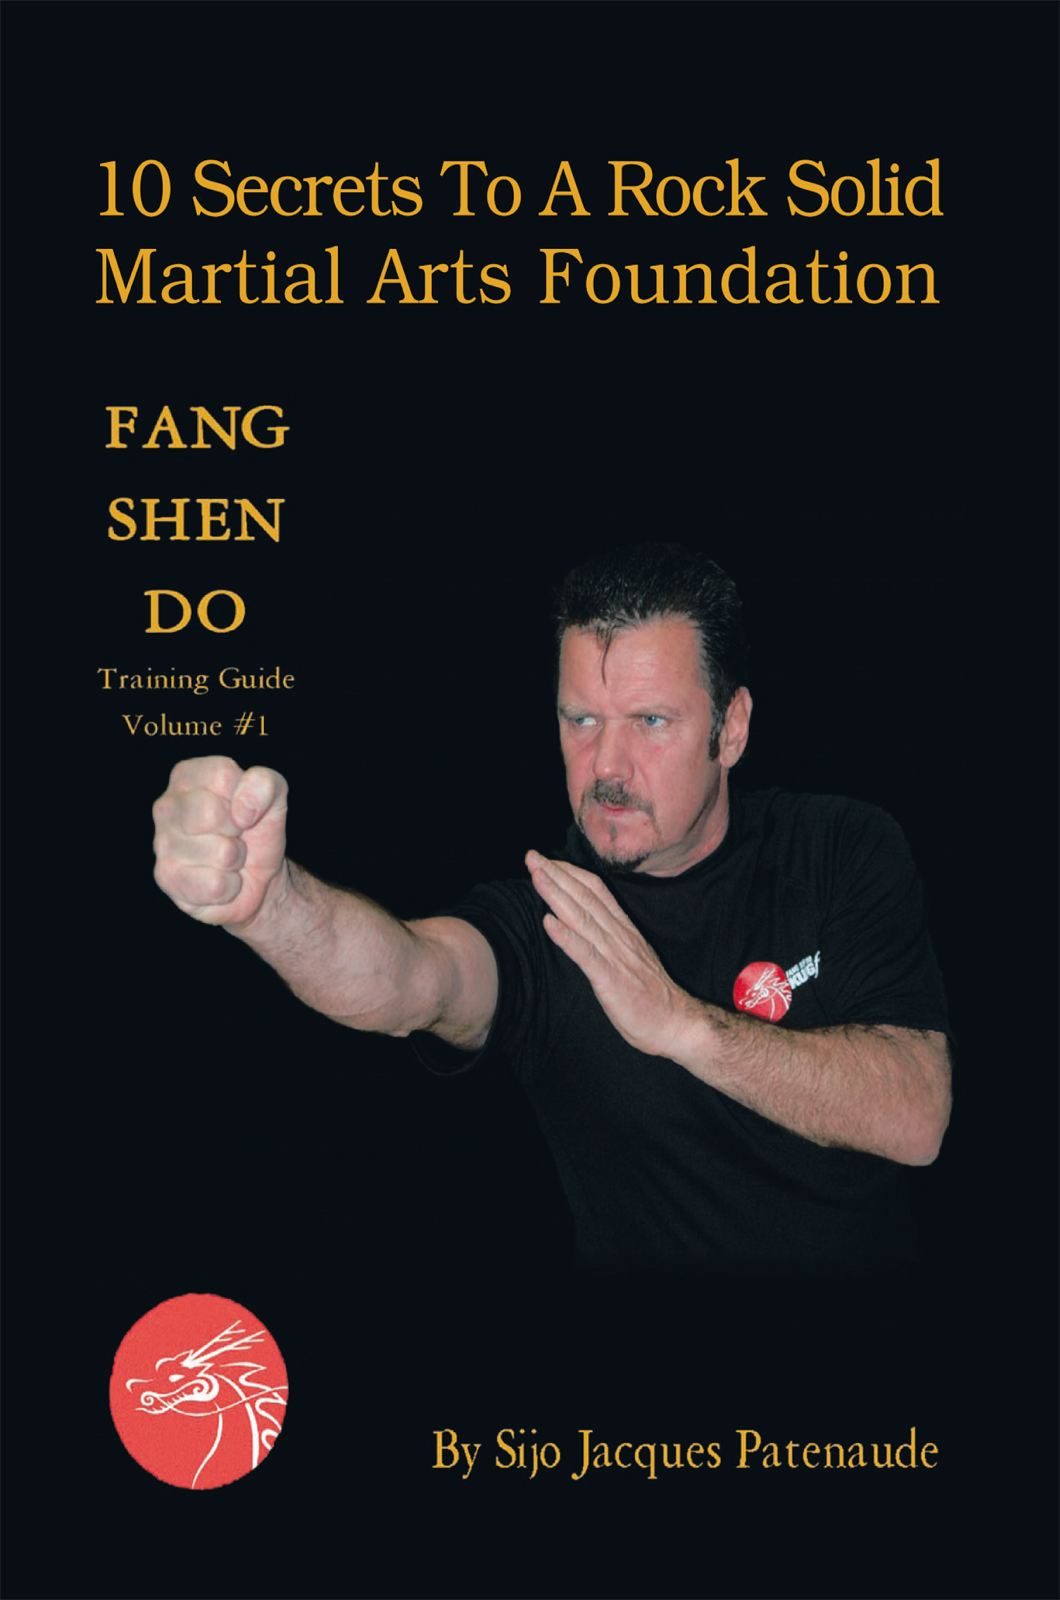 10 Secrets To A Rock Solid Martial Arts Foundation By: Sijo Jacques Patenaude